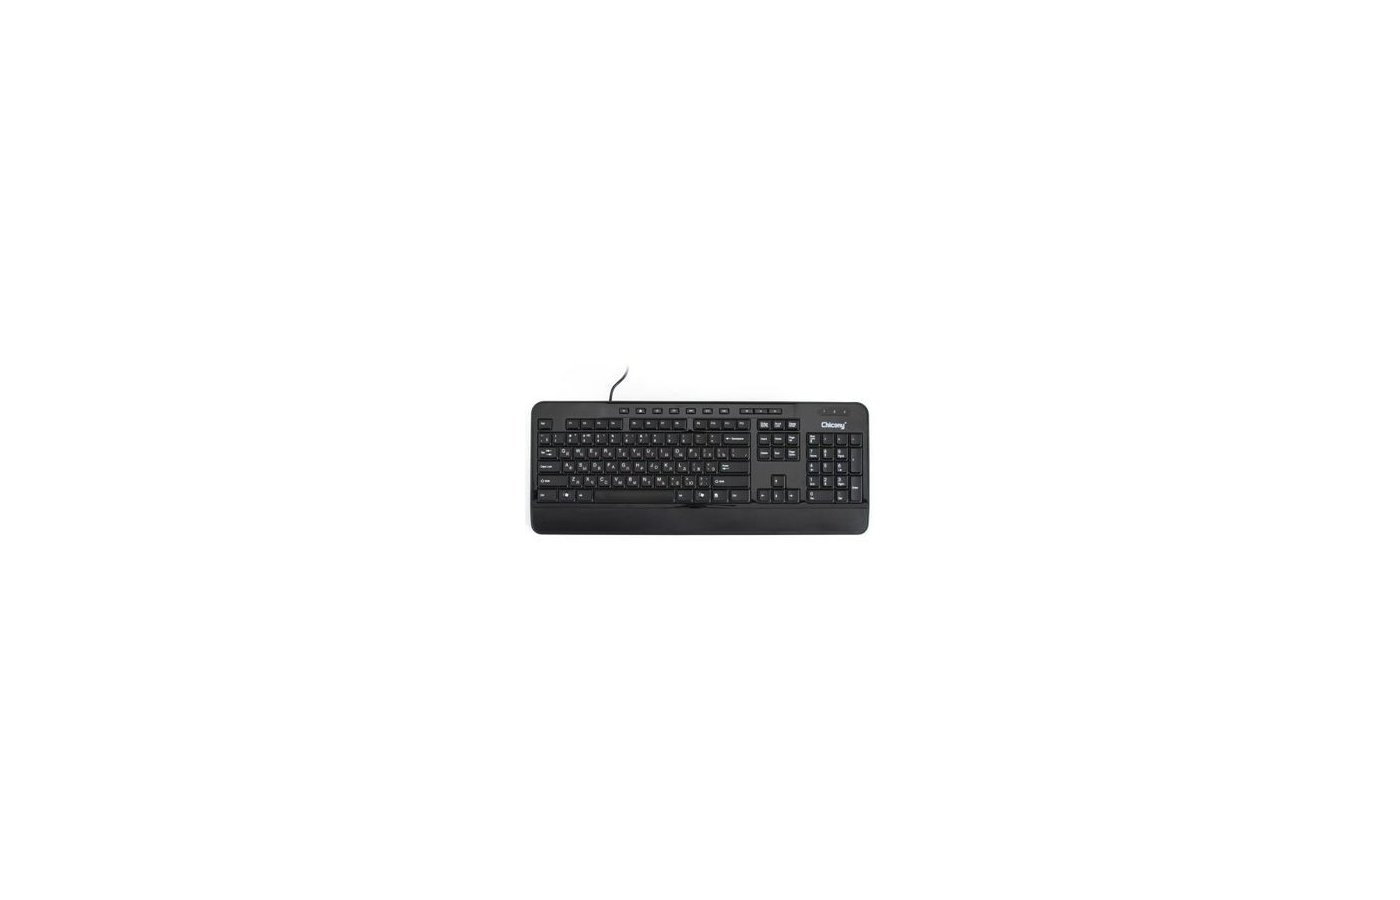 Клавиатура проводная Chicony KU-0950 USB black 10 hot keys build-in palmrest